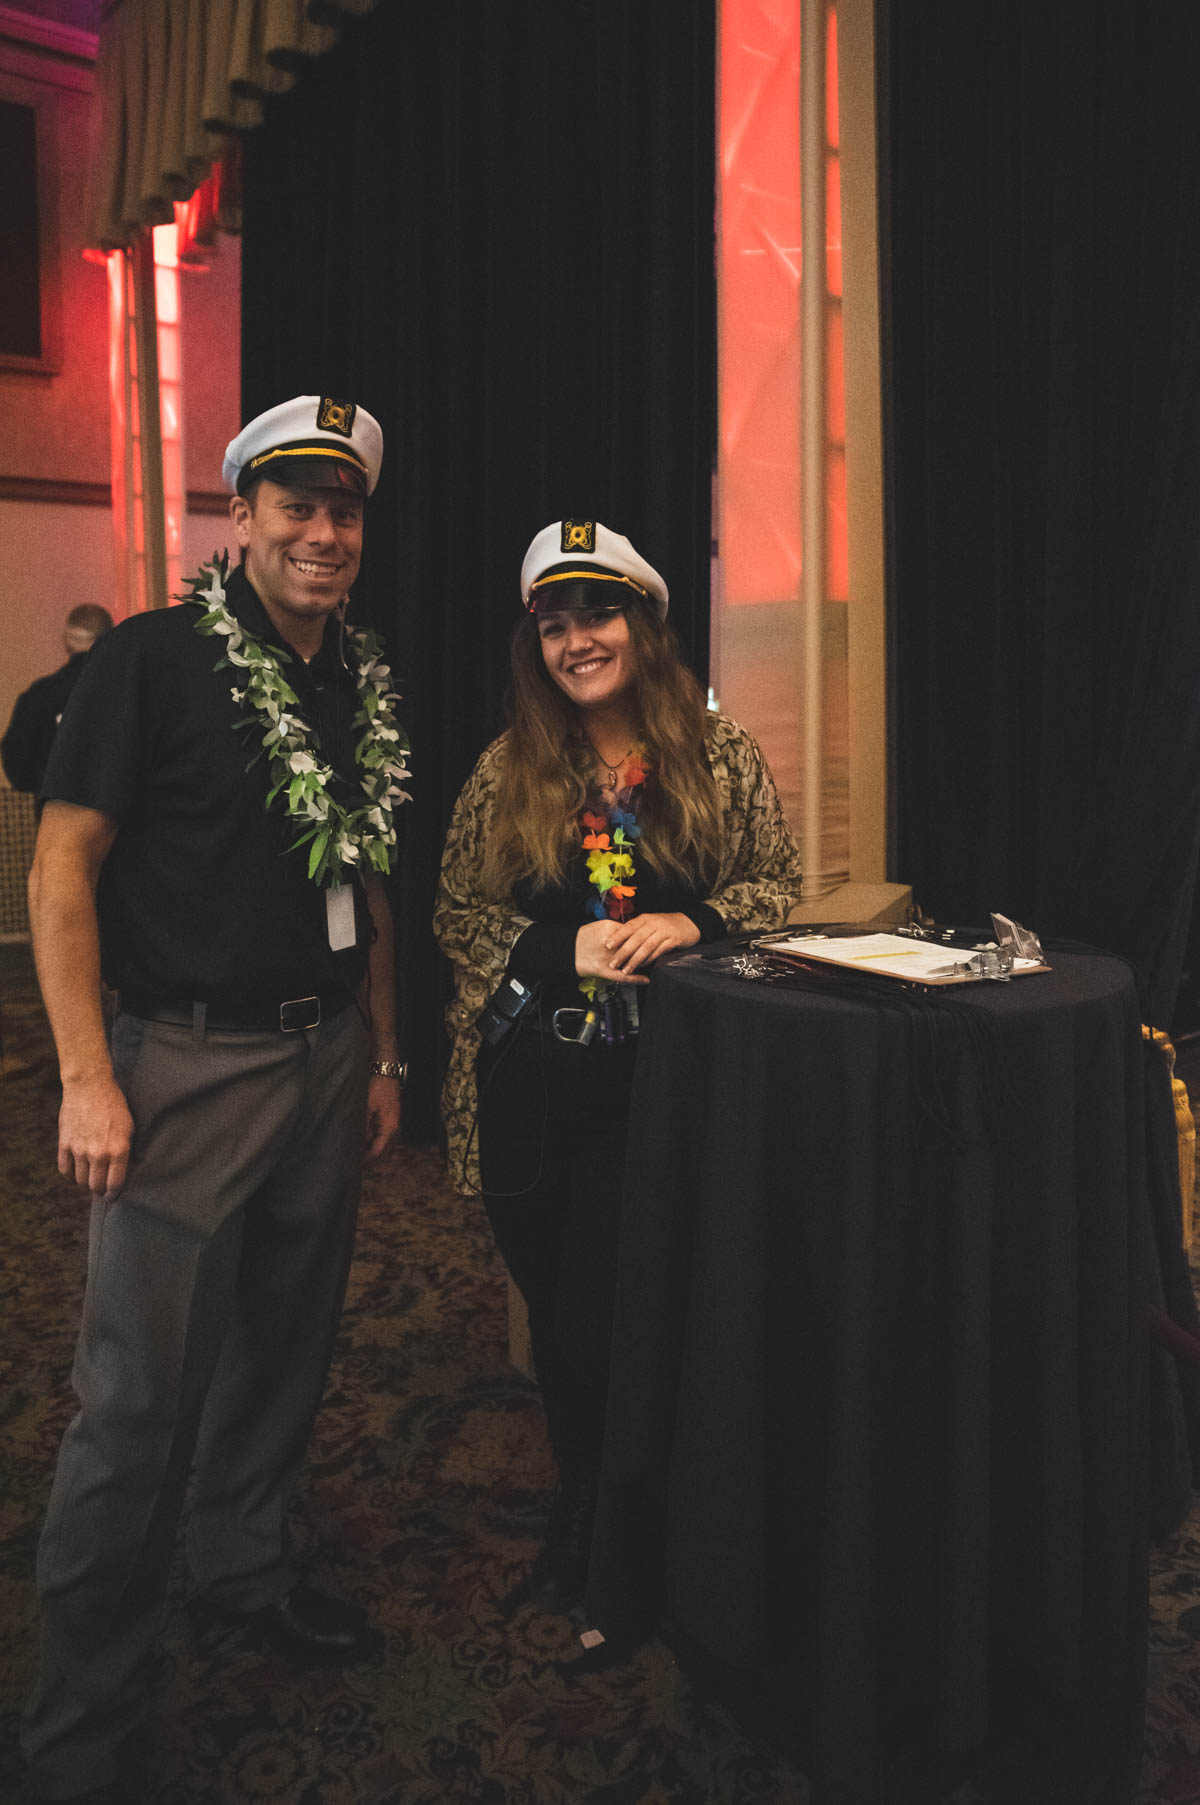 Even the staff gets in on the fun when Yacht Rock Revue comes to town! | 4.19.2019